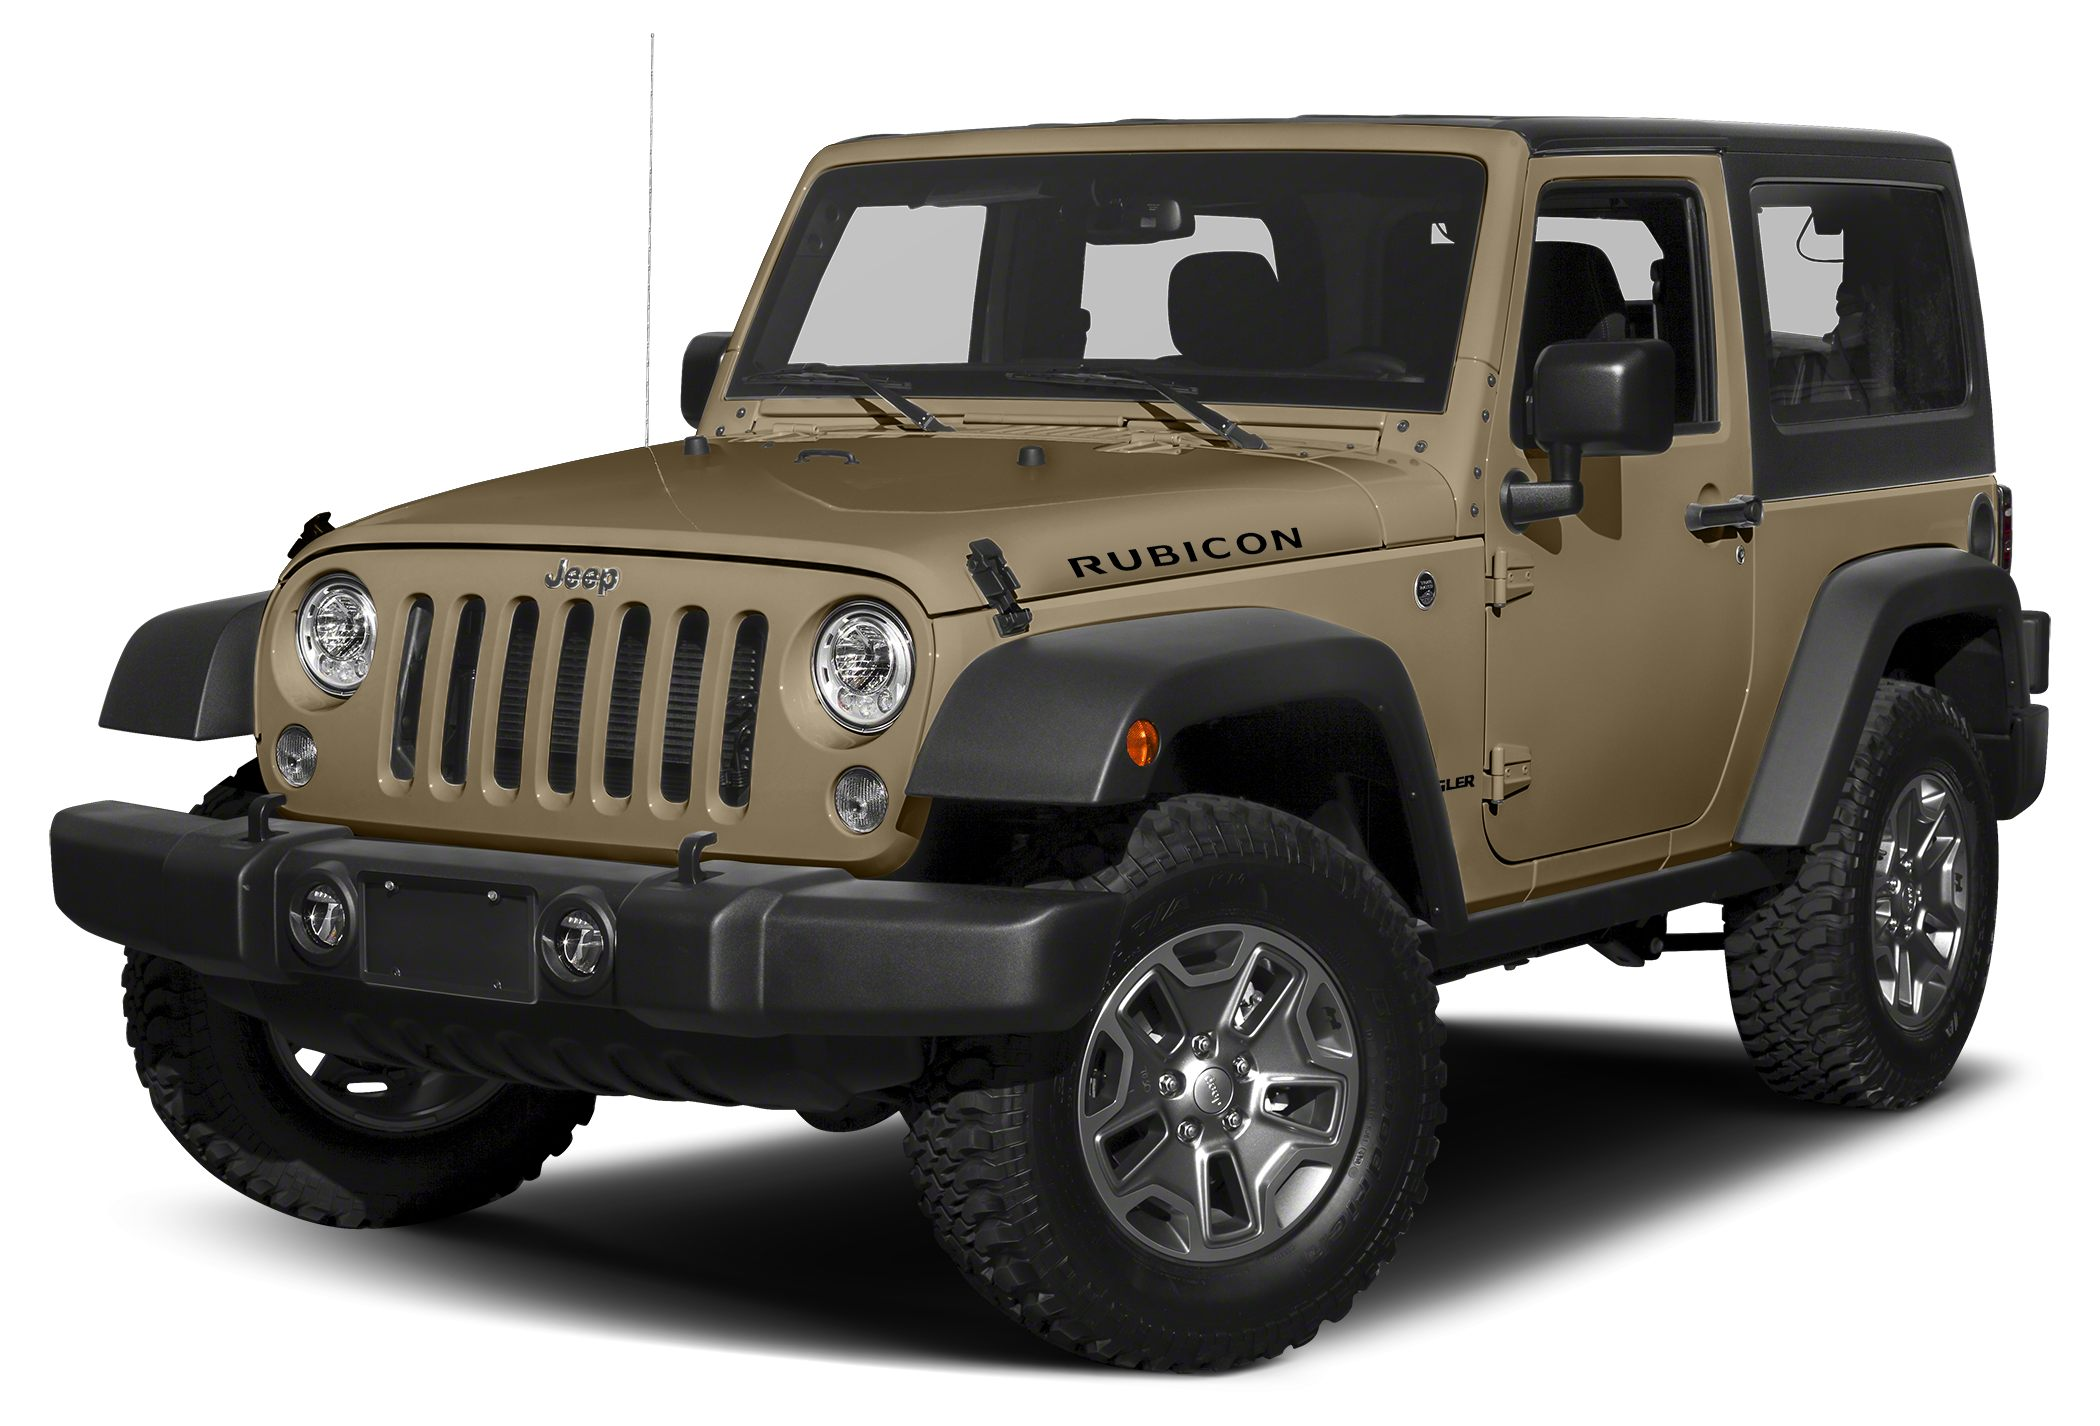 2017 Jeep Wrangler Rubicon ASK US ABOUT OUR SPECIAL WRANGLER DIVISION PROJECT RUBICON FOR MORE INF